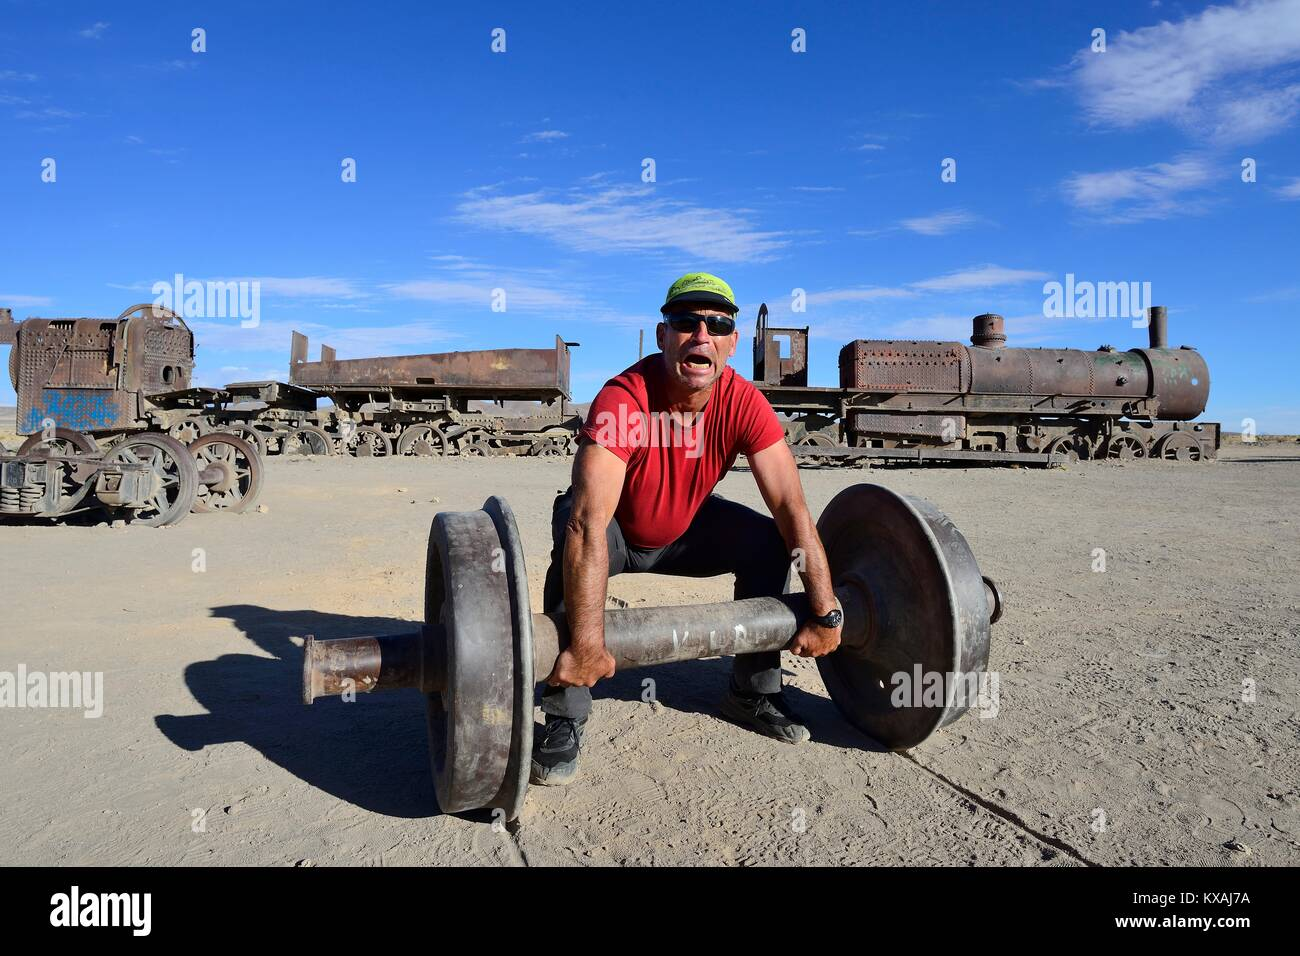 Tourist uses axle as barbell, railway cemetery, Uyuni, Potosi, Bolivia - Stock Image